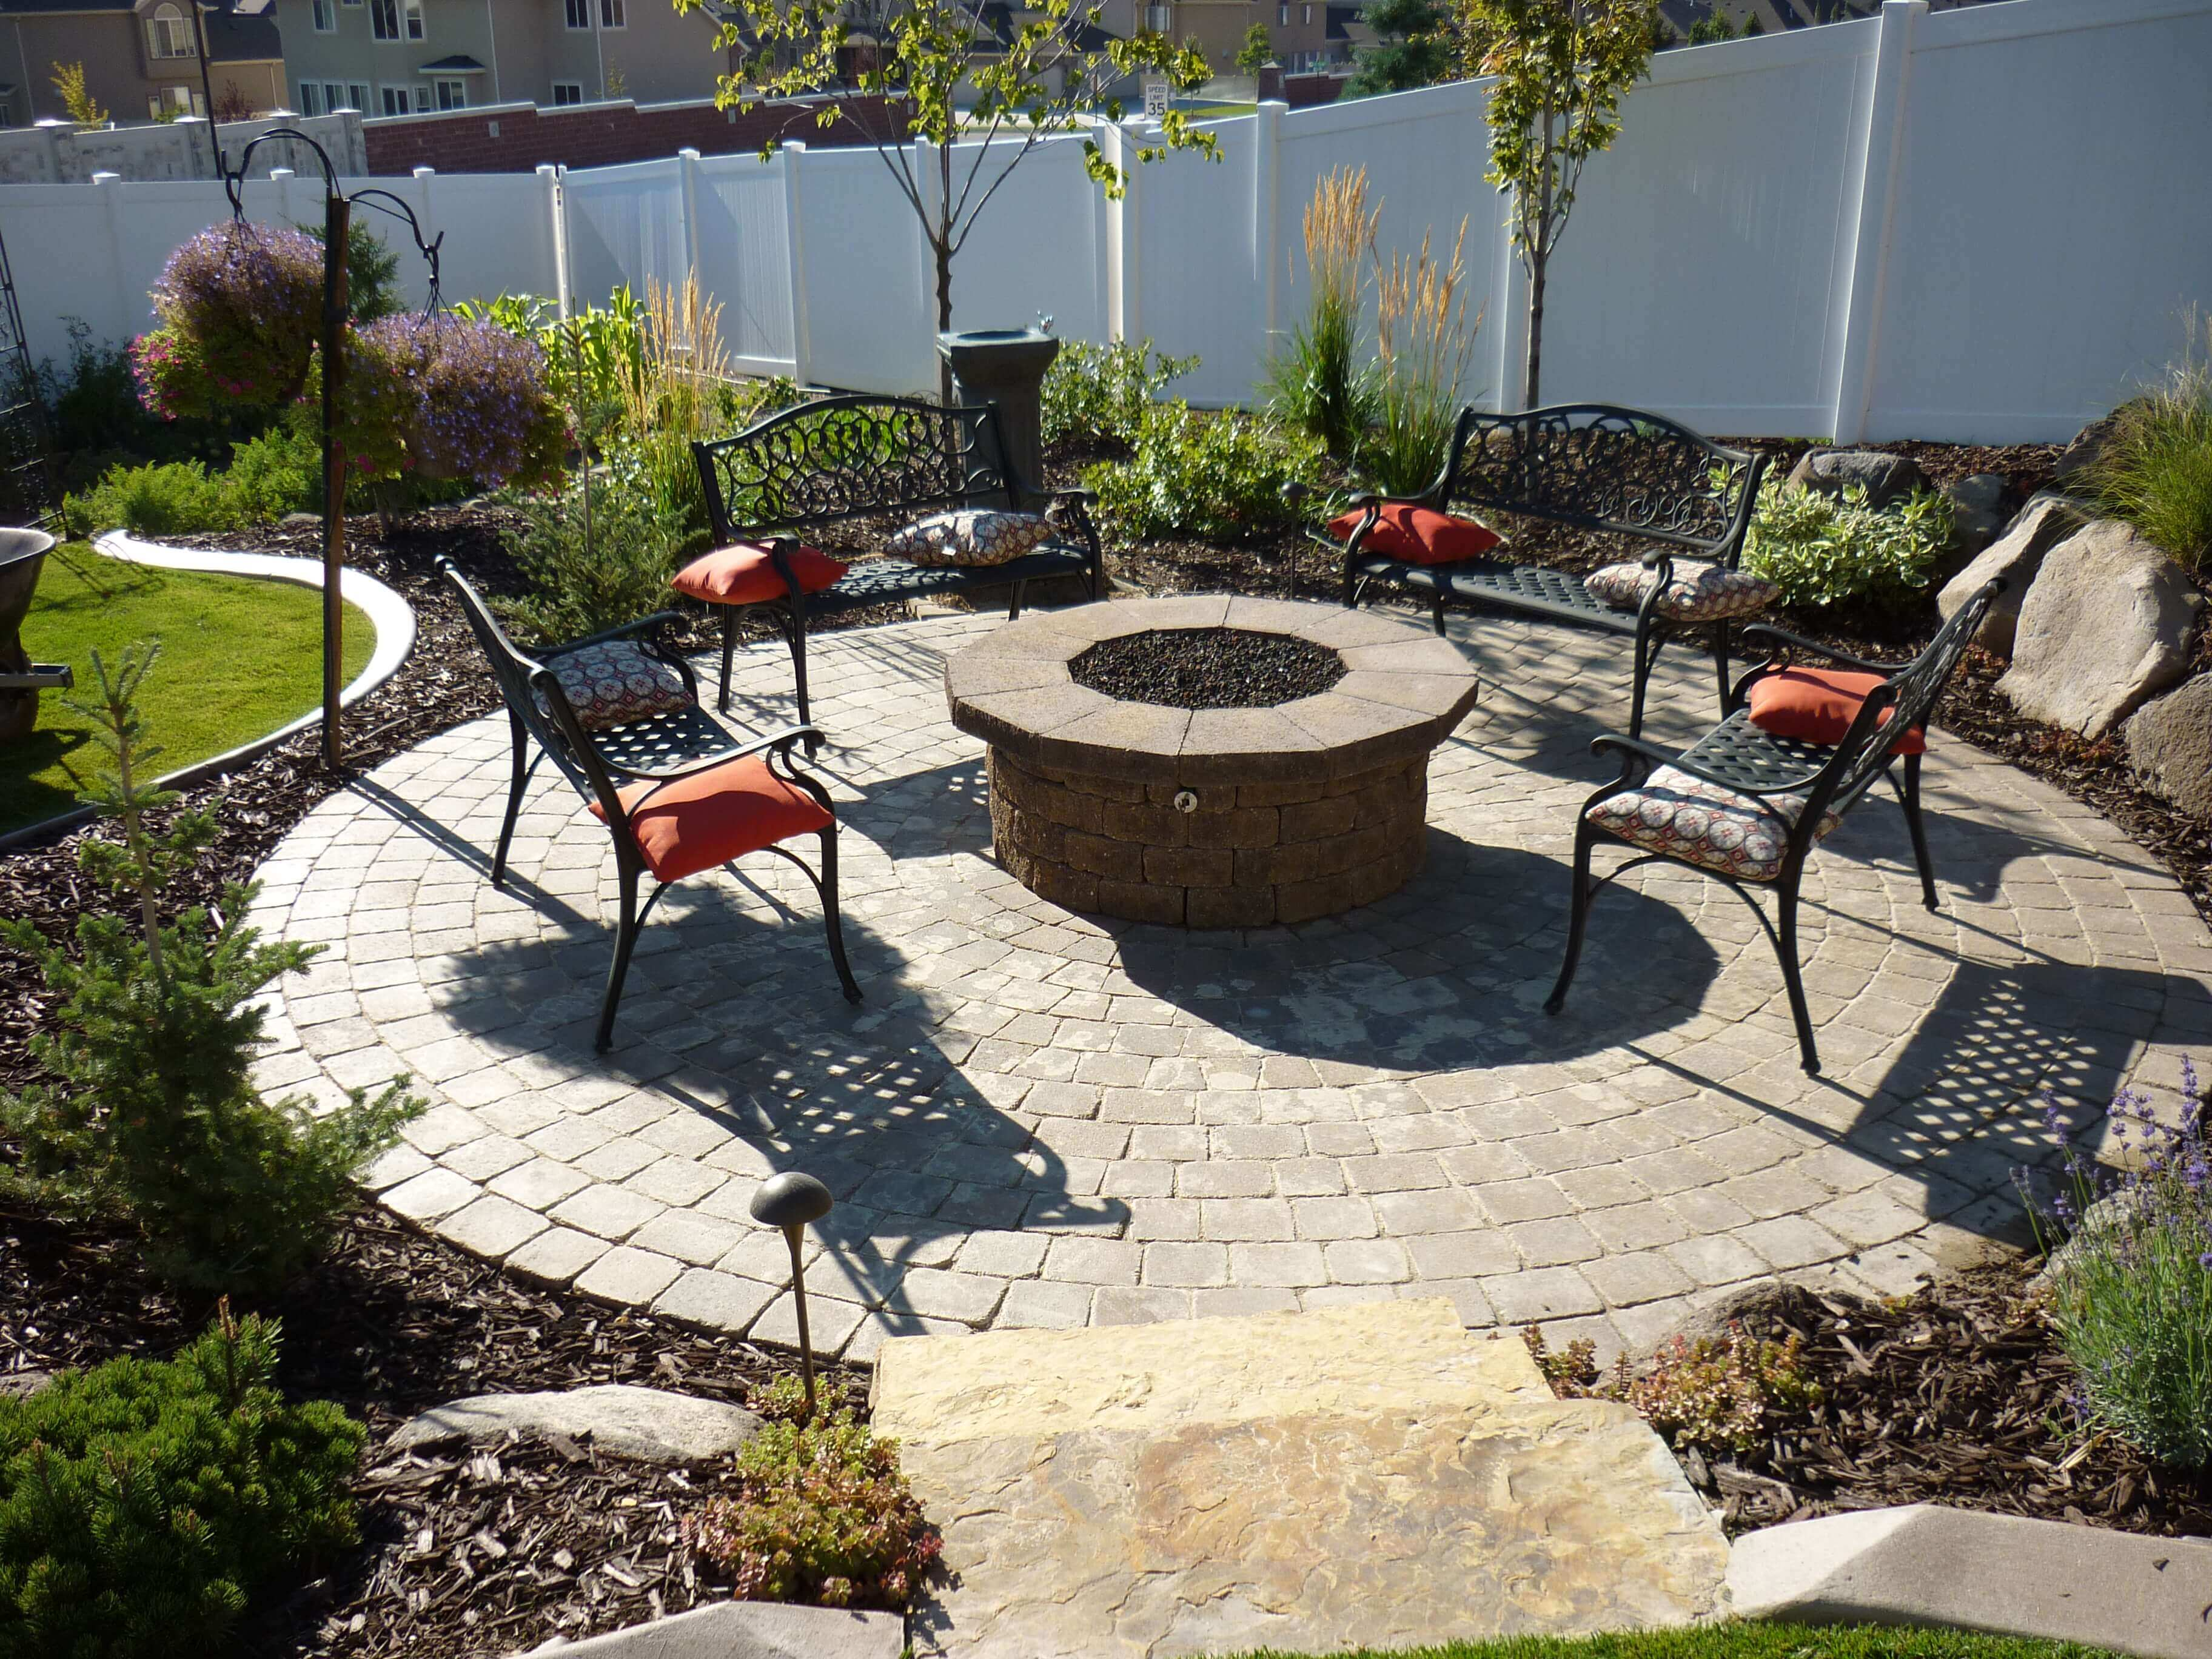 A Raised Pit in a Walled Garden   Awesome Firepit Area Ideas For Your Outdoor Activities